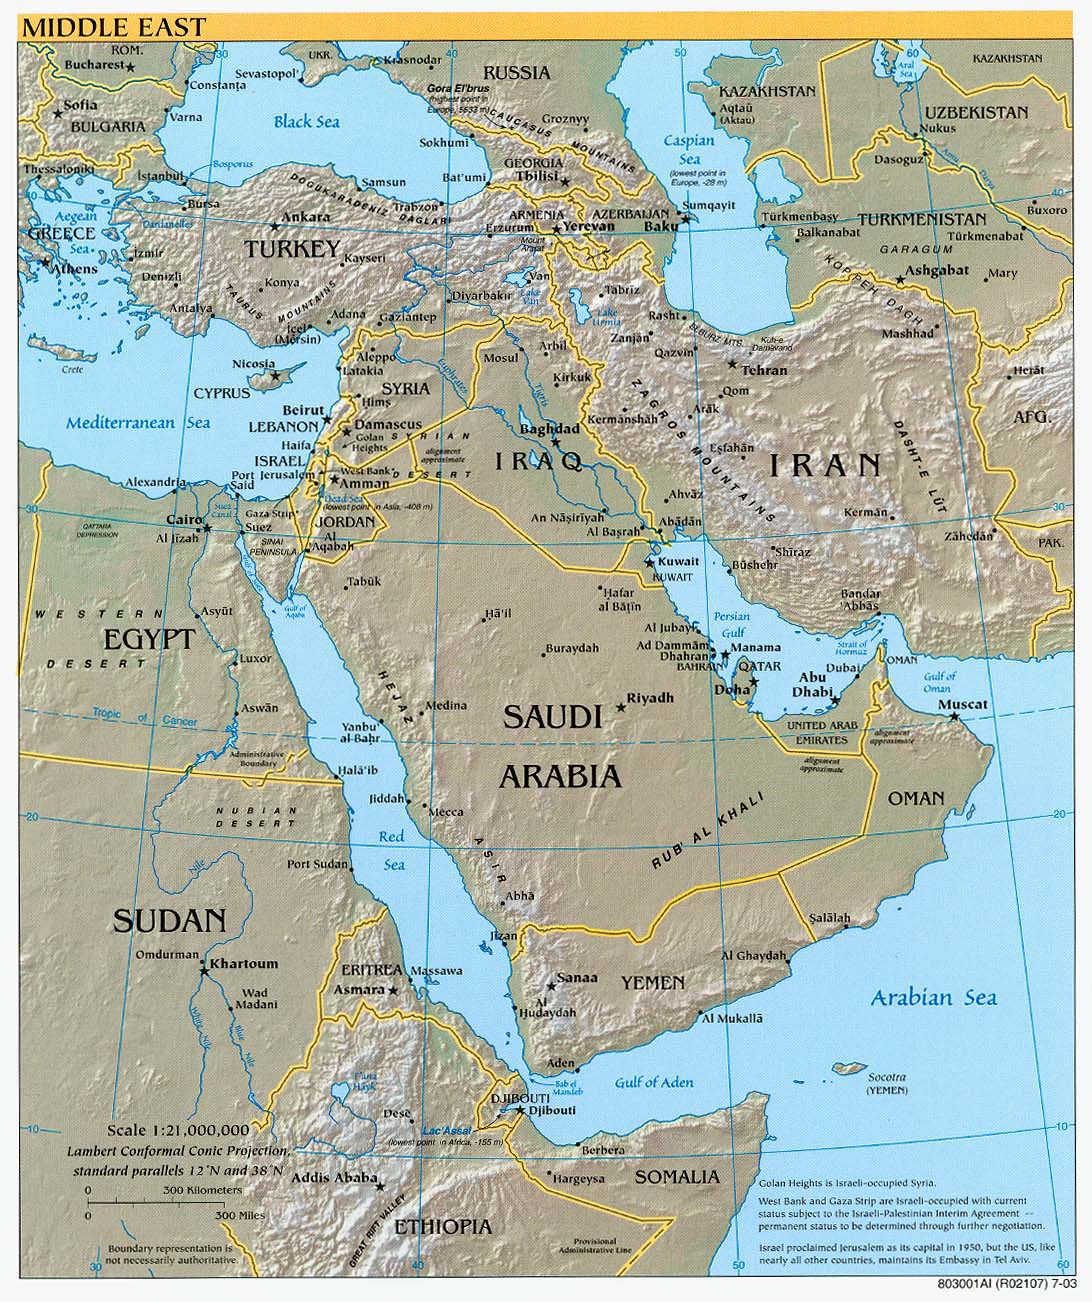 Middle East physical map 2003